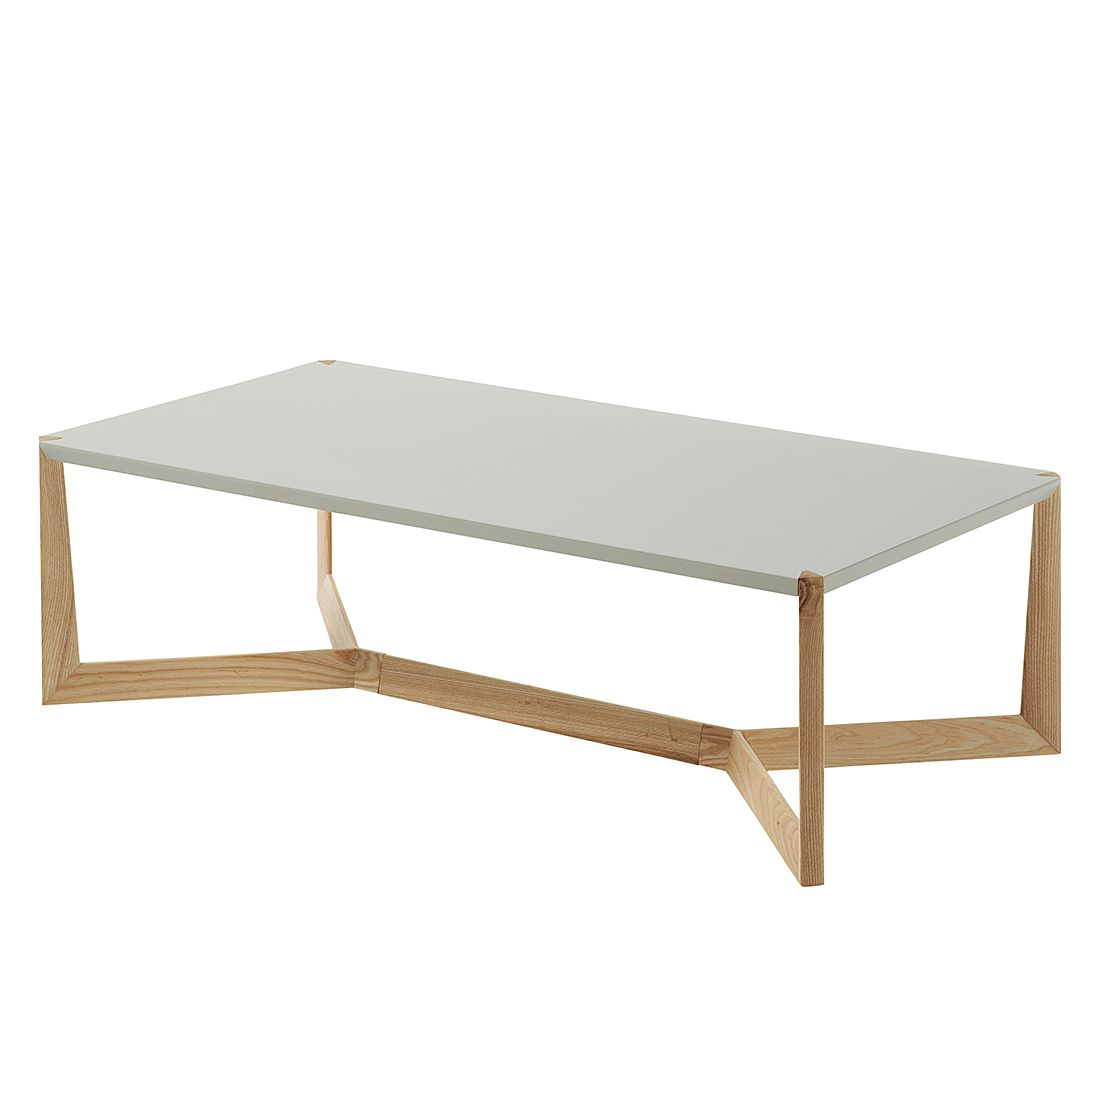 Table basse Donore - Gris clair mat / Chêne, Morteens